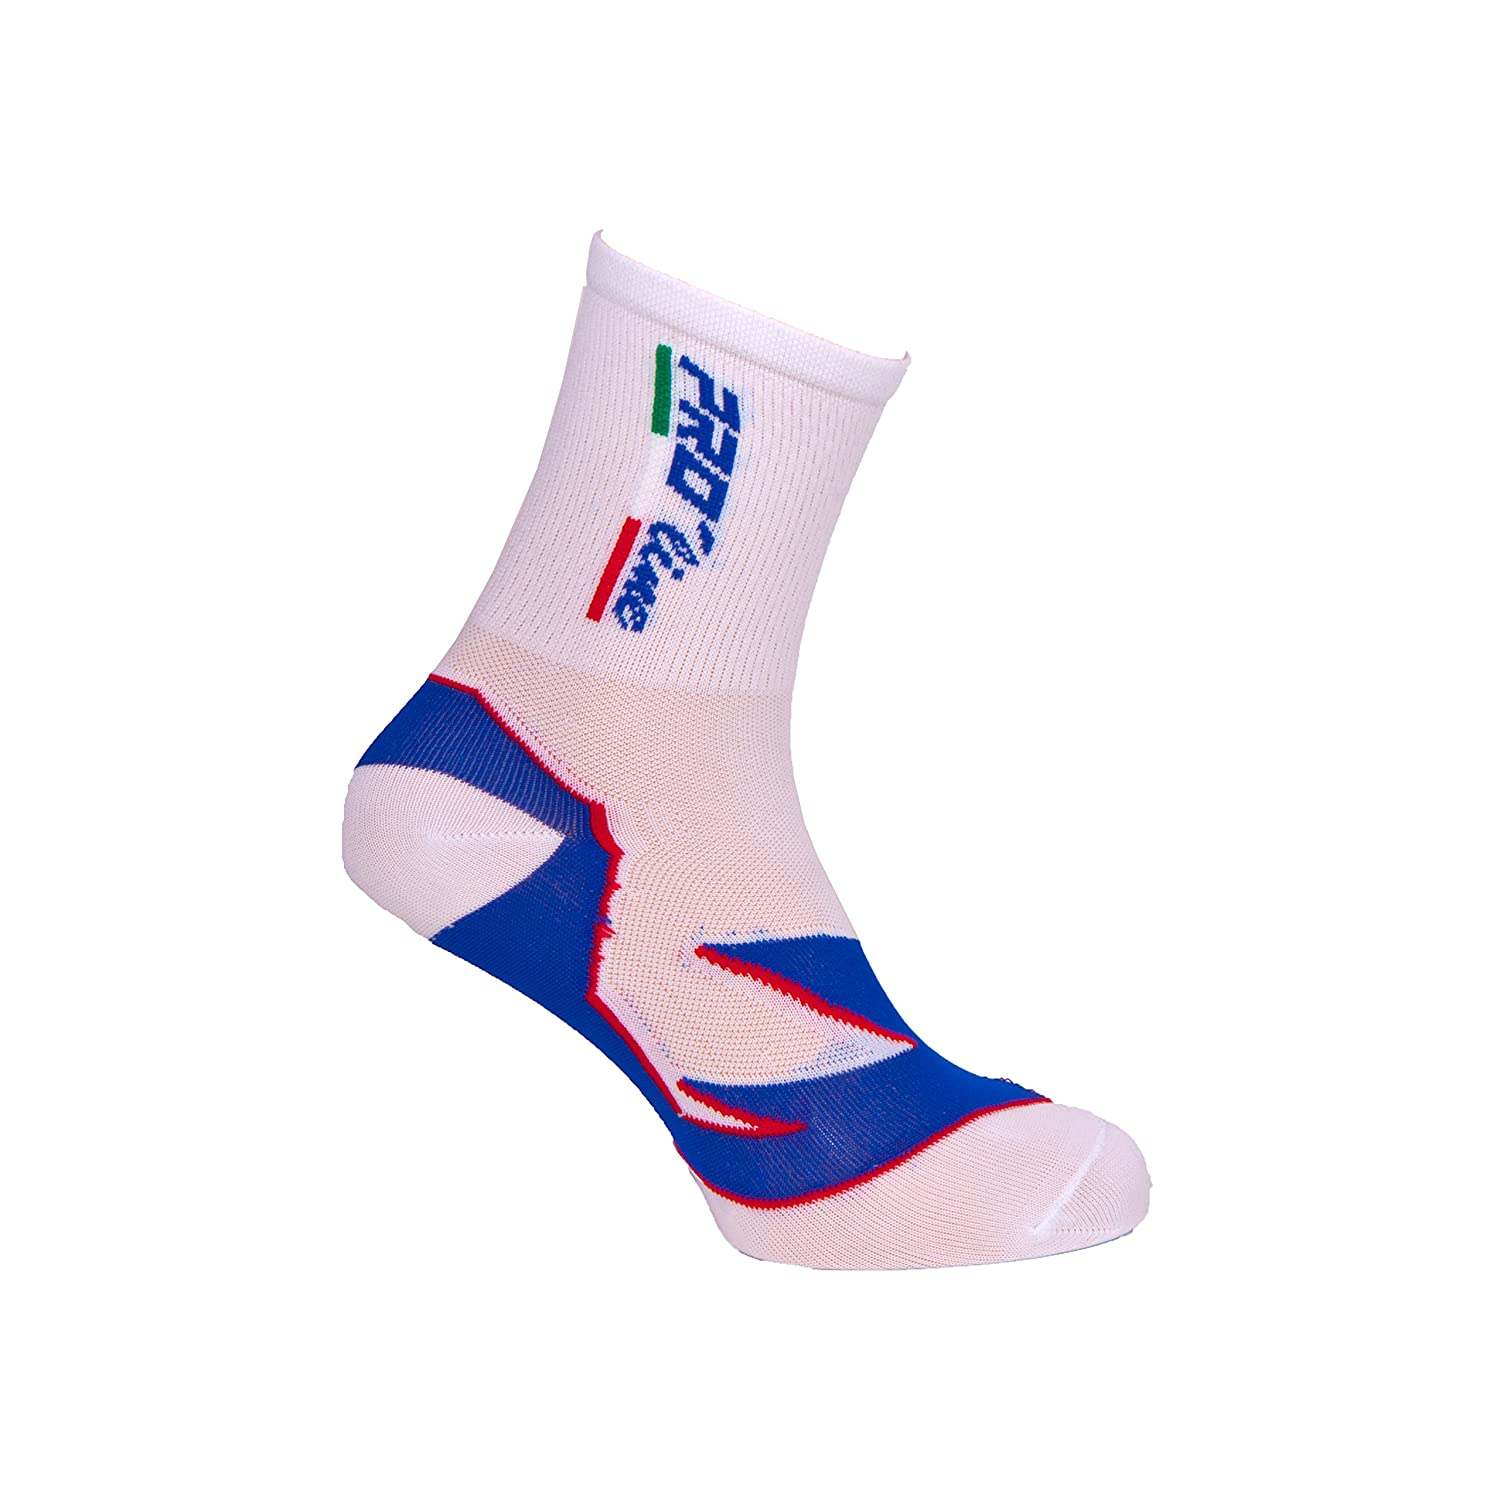 Calzini Ciclismo PROLINE White And Blue Cycling Socks 1 Paio One Size New Line